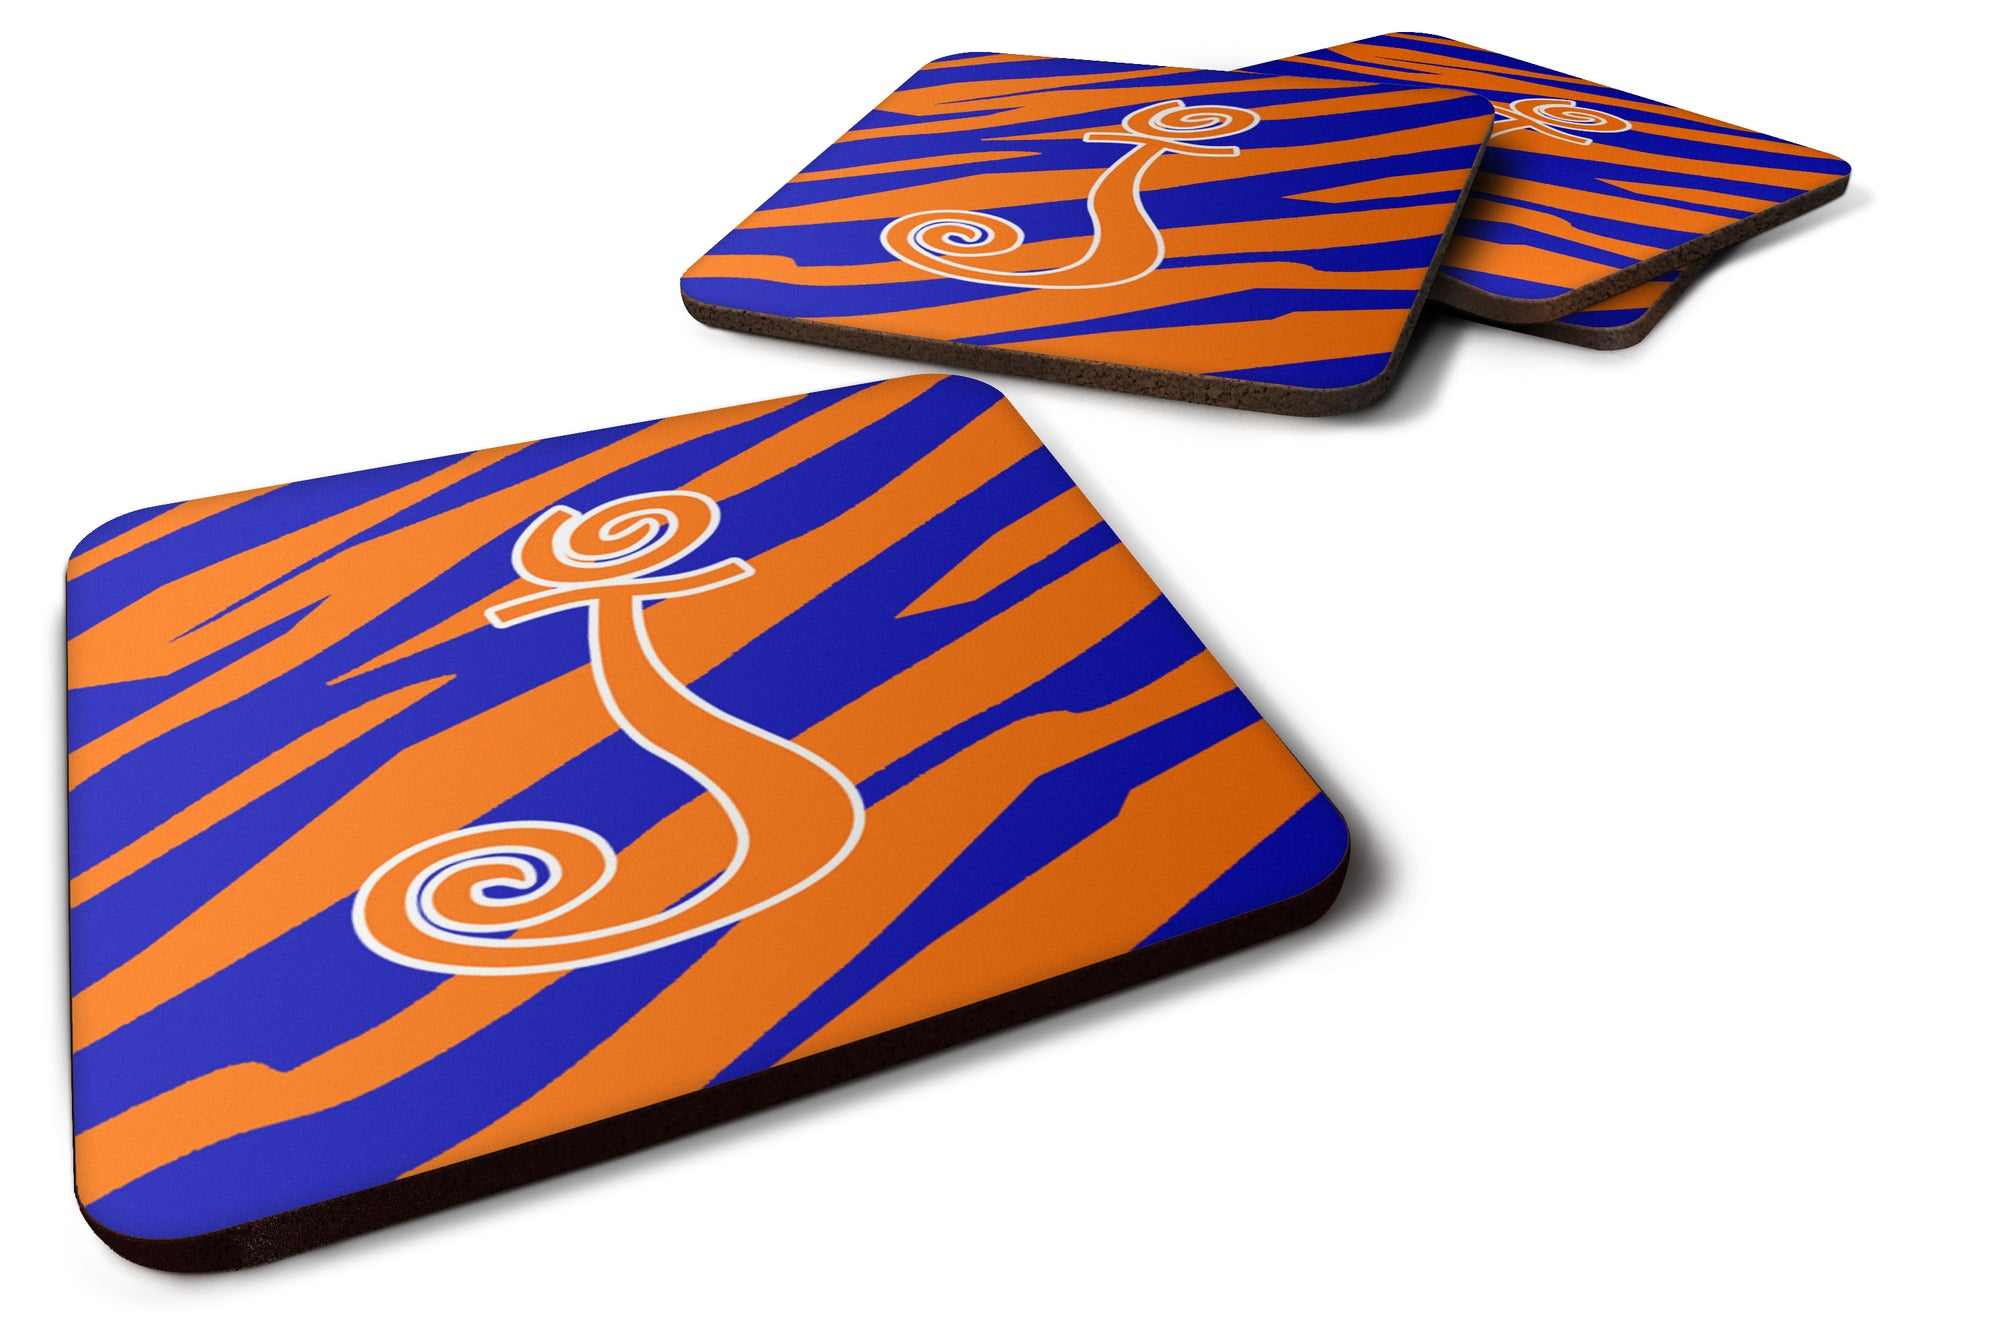 Set of 4 Monogram - Tiger Stripe Blue and Orange Foam Coasters Initial Letter J by Caroline's Treasures